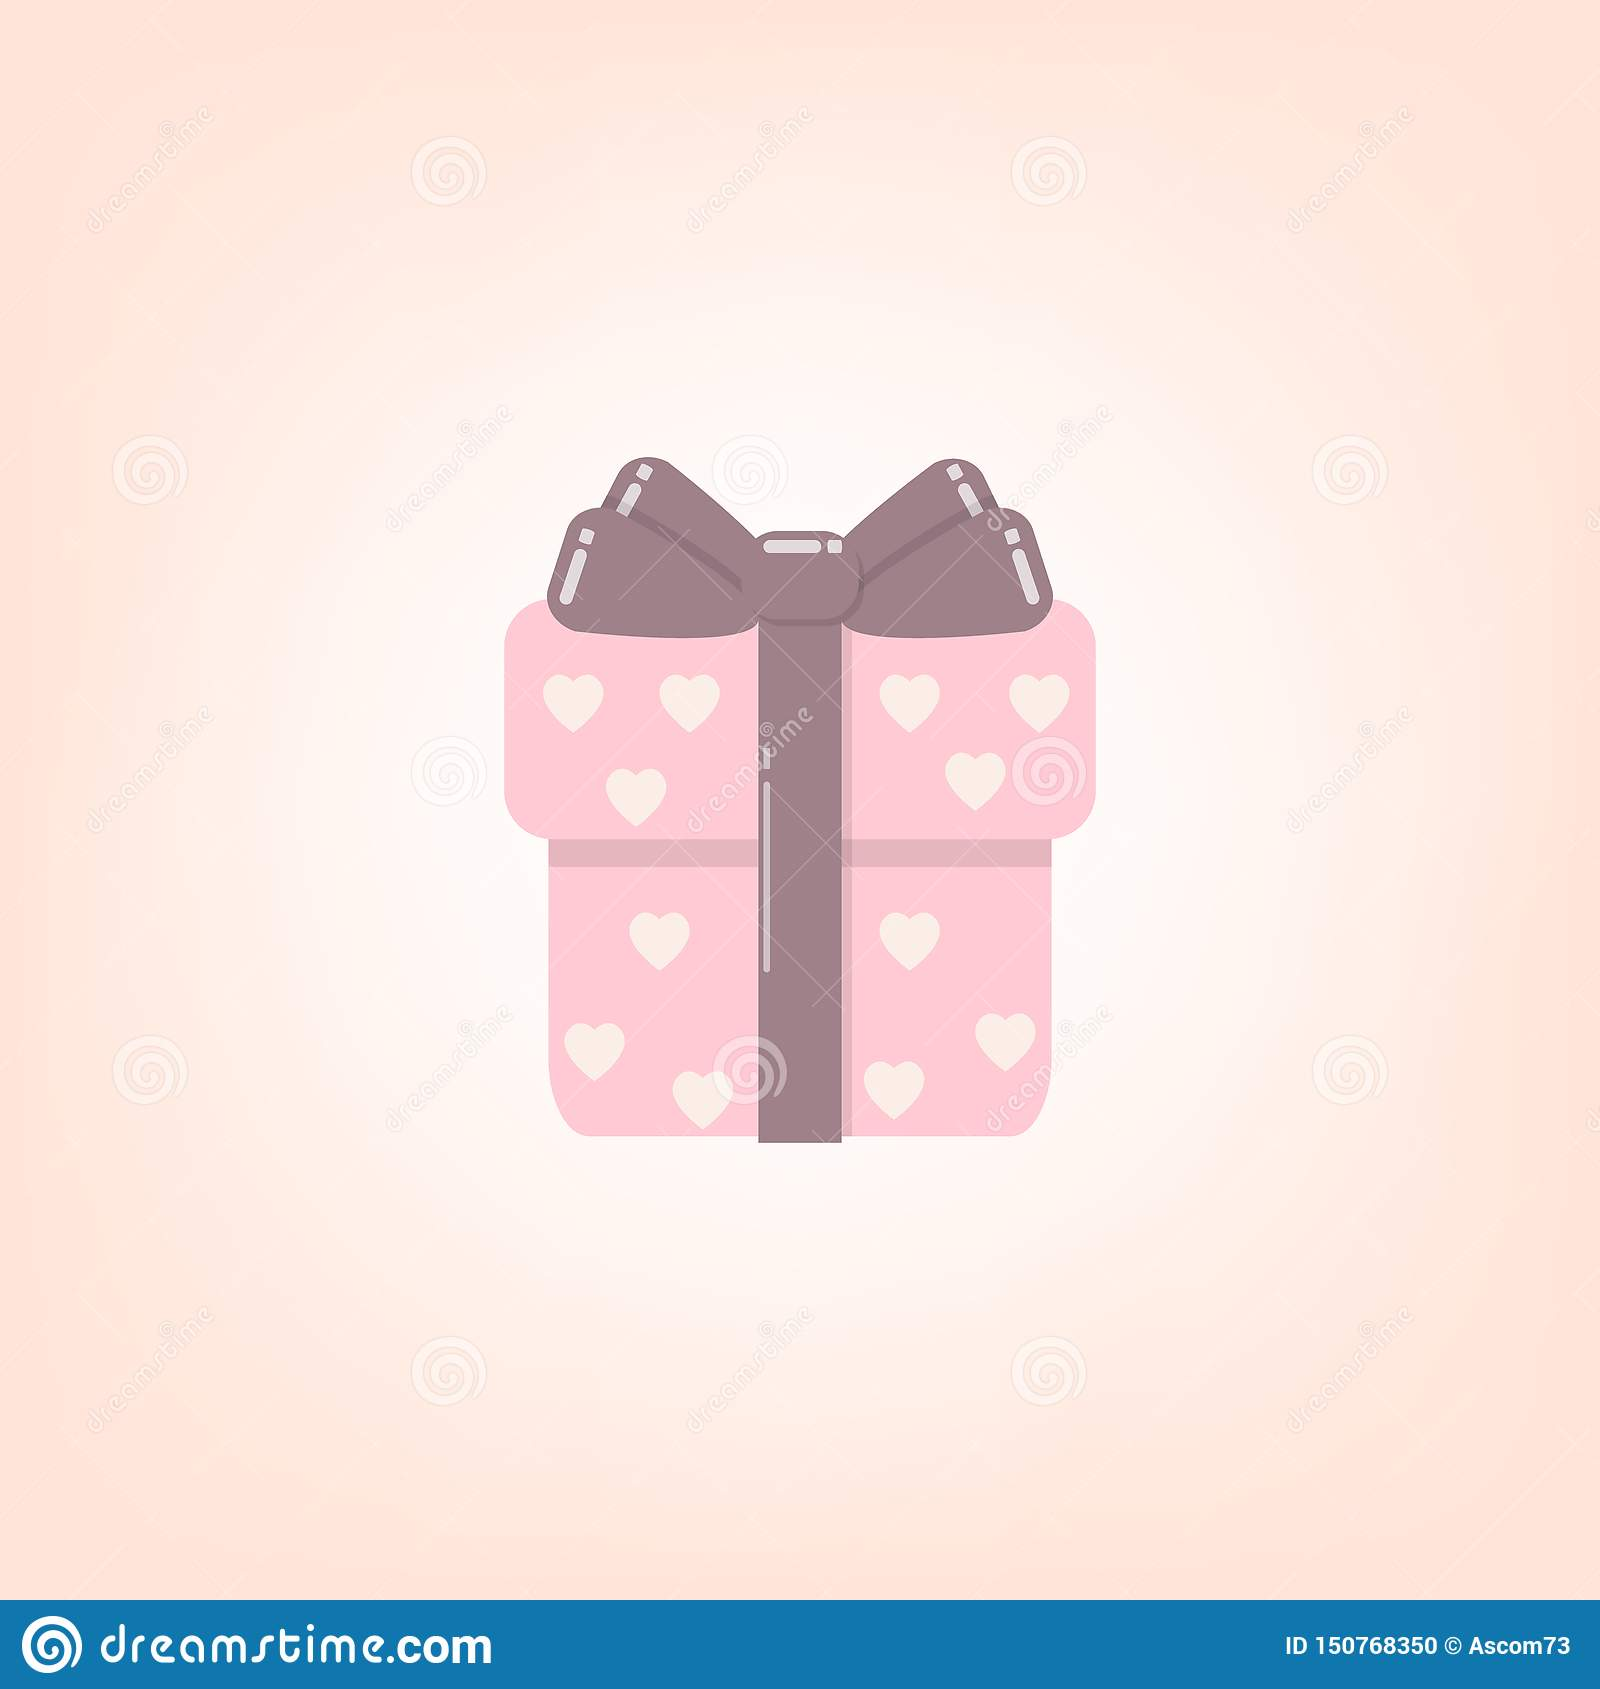 Christmas gift box with ribbon and bow vector icon for graphic design, logo, web site, social media, mobile app, ui illustration